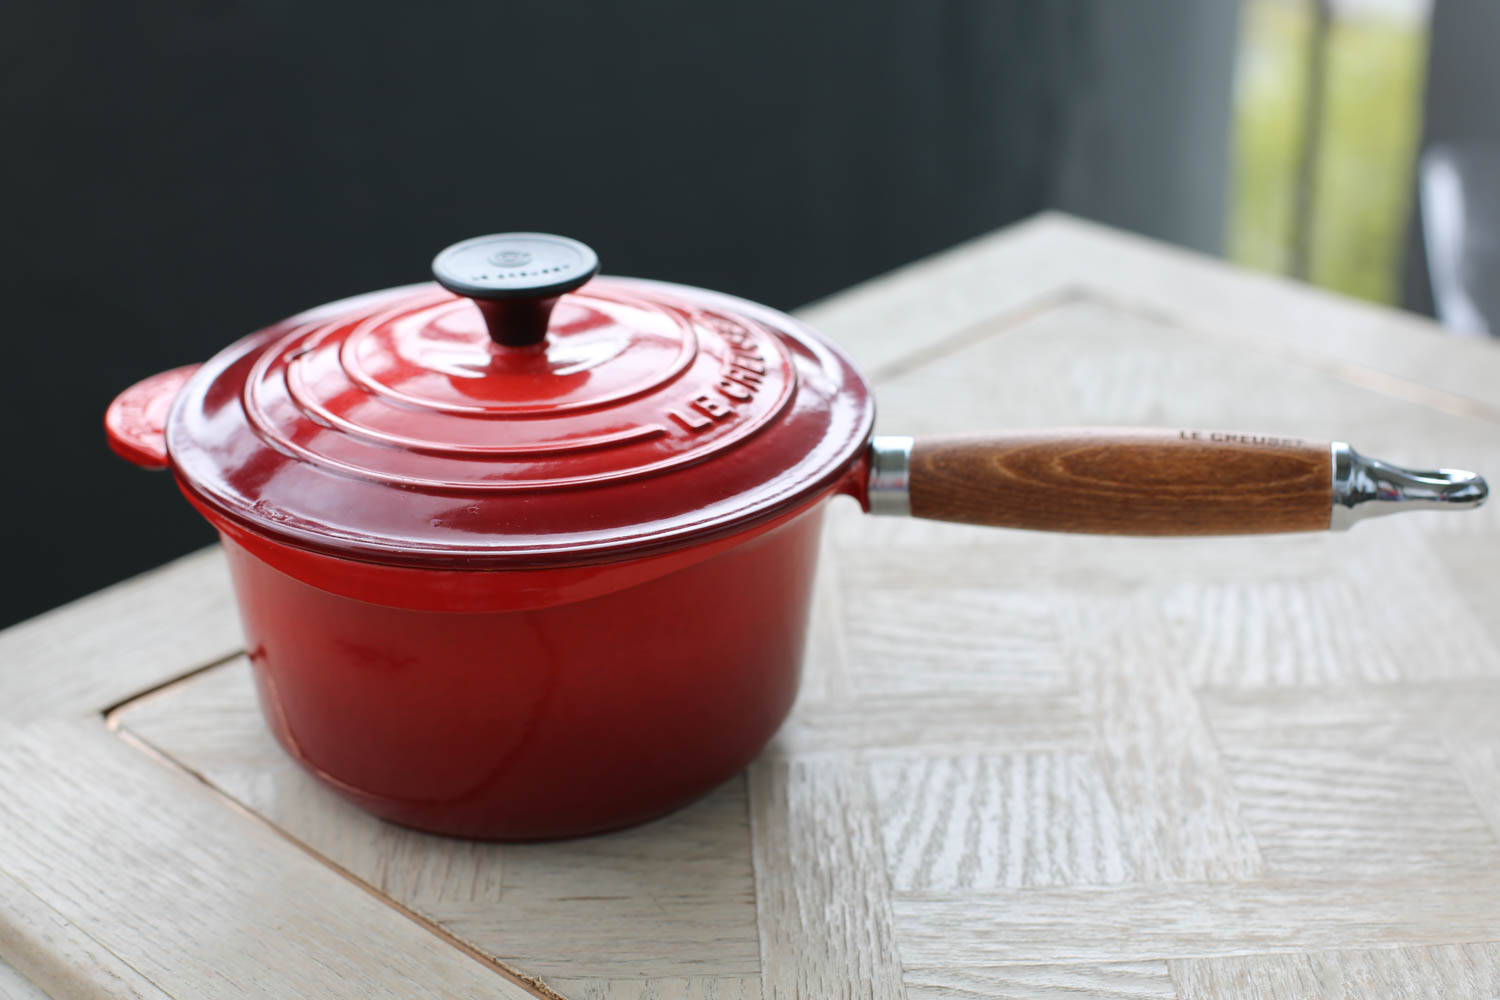 Le Creuset Heritage Wooden Handle Cast-Iron Saucepan. The wooden handle makes it comfortable to hold and keeps it cool to the touch. Perfect for stove-top cooking. I bought mine at Williams-Sonoma.